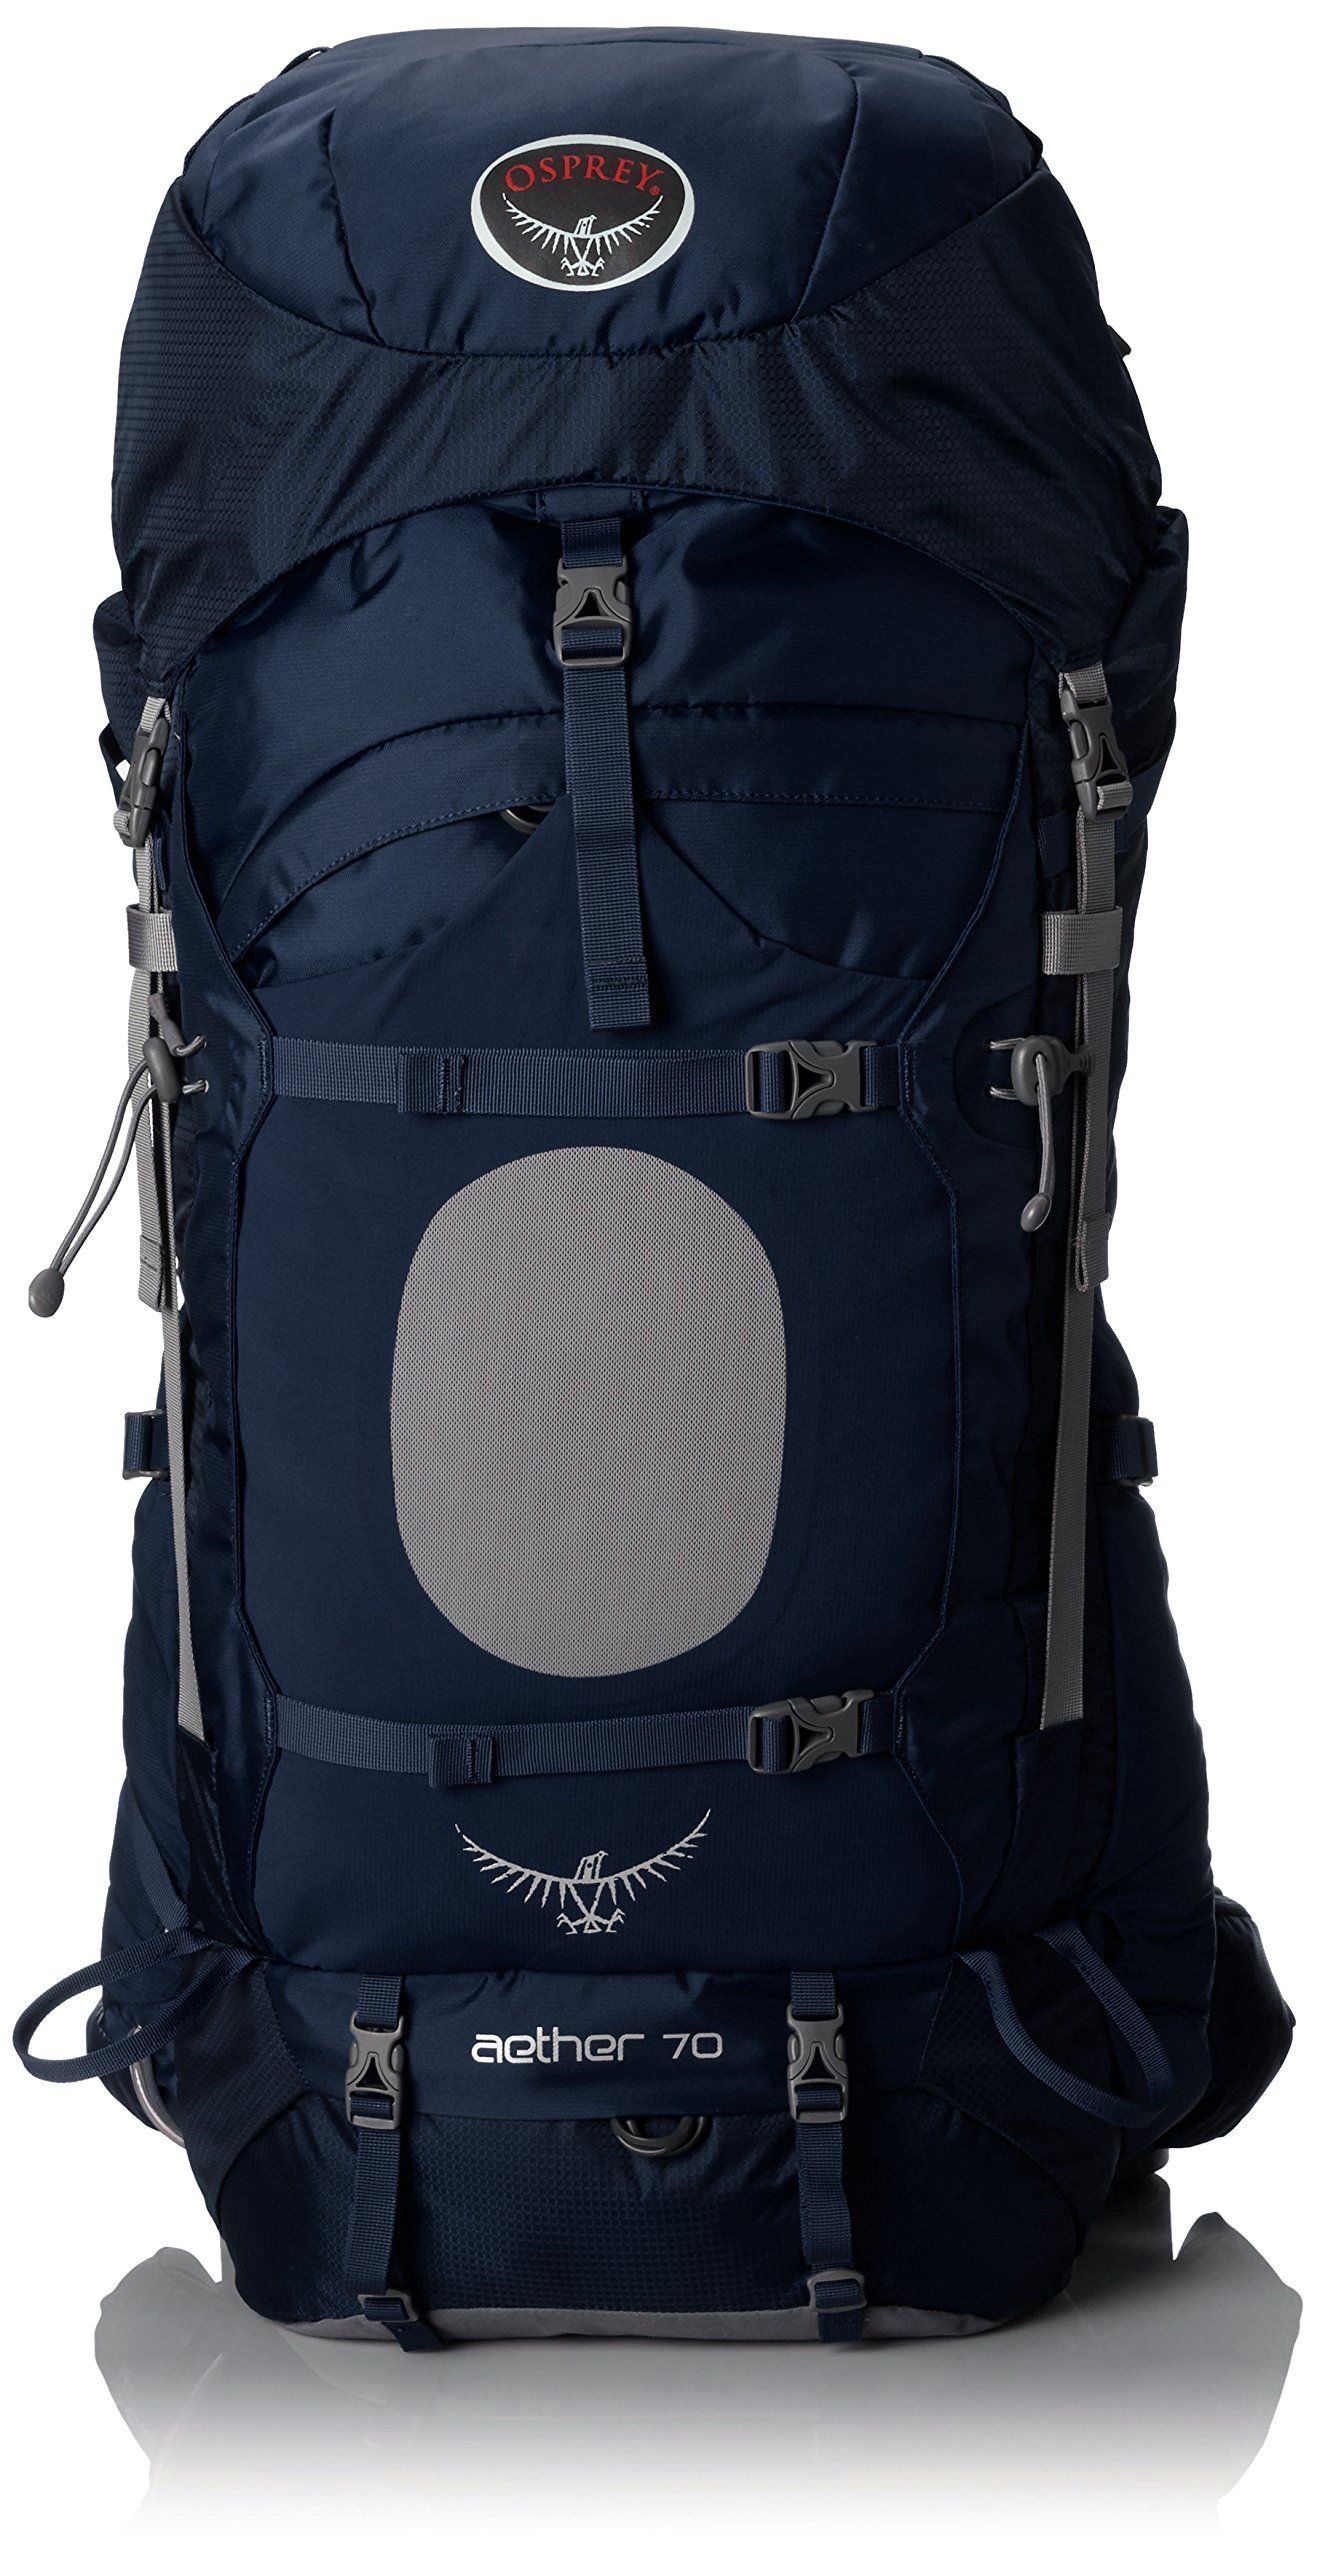 Awesome Backpacks In The World- Fenix Toulouse Handball 9c4596d6e8b51